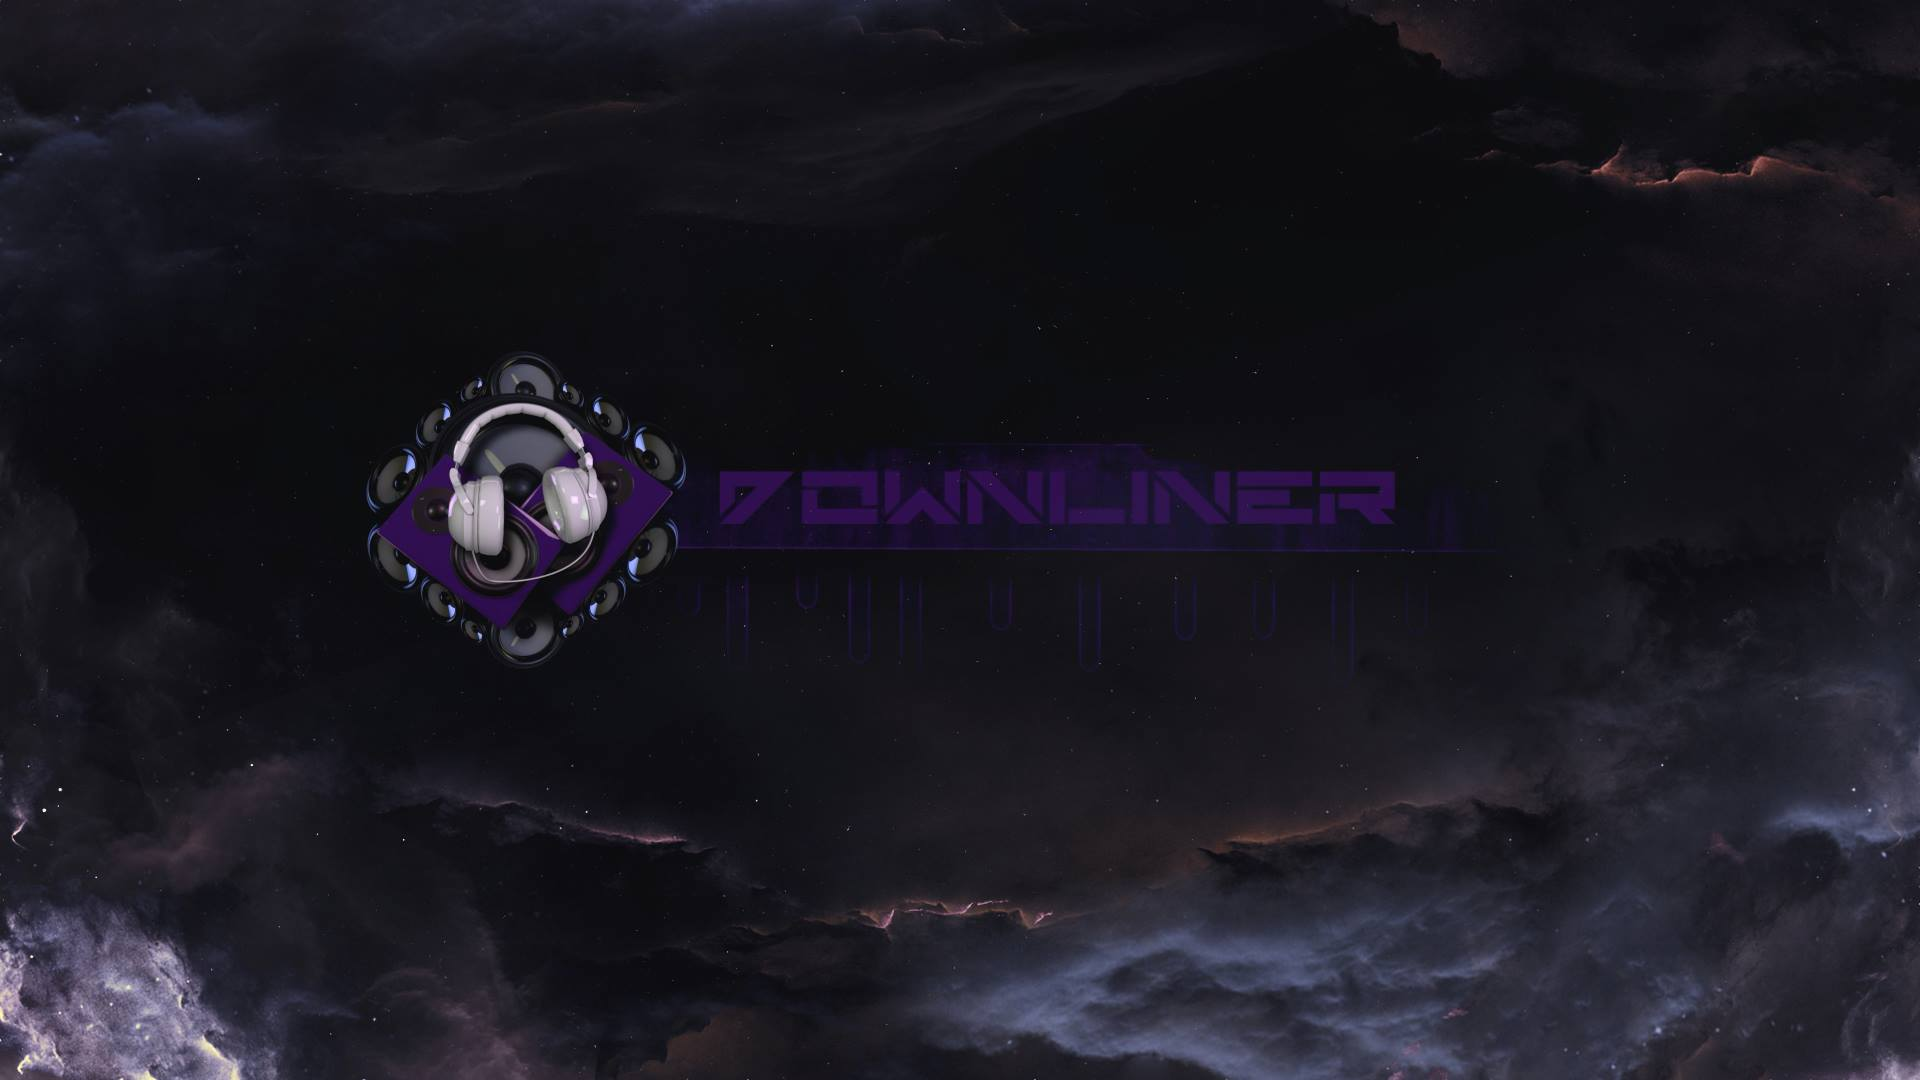 Downliner Wallpaper.jpg